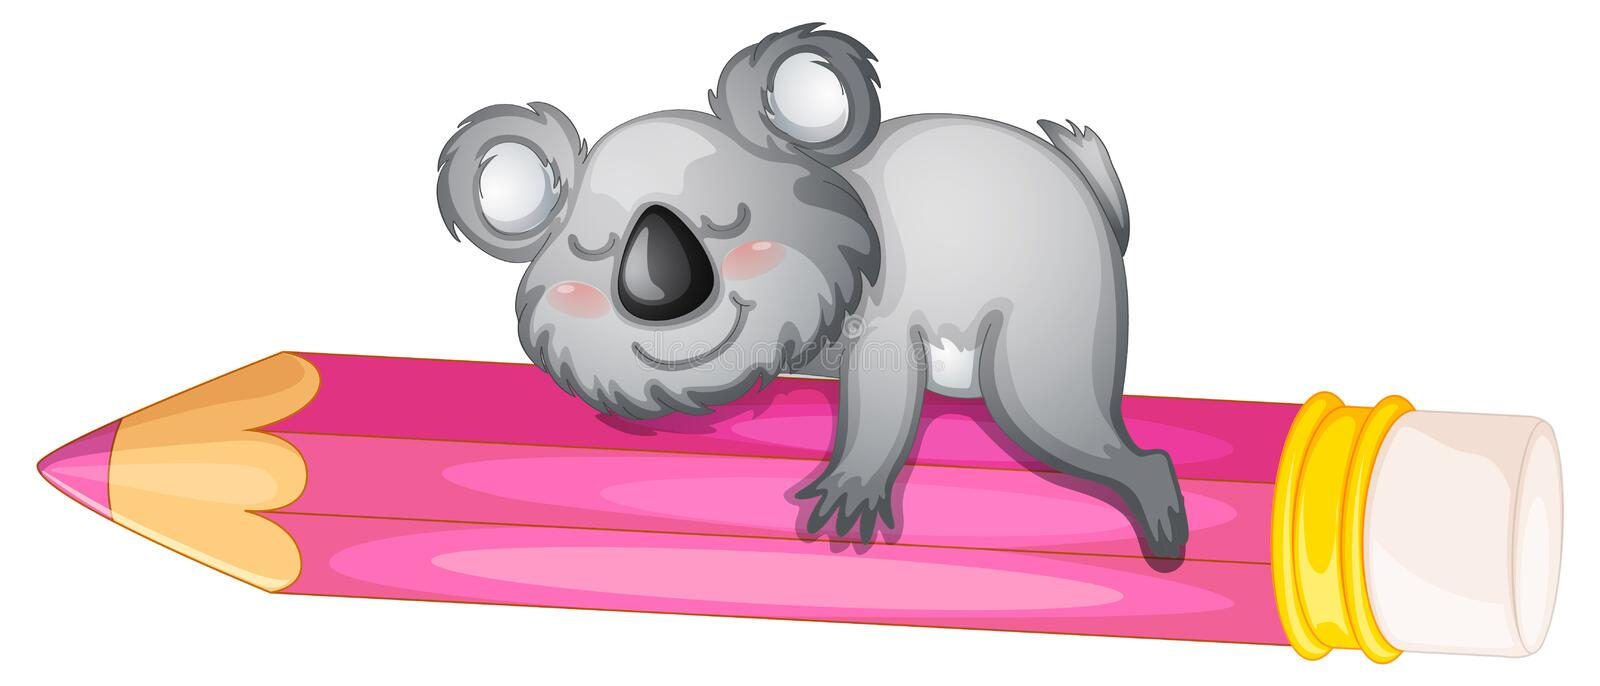 Download Bear sleeping on pencil stock vector. Image of holding - 26352243